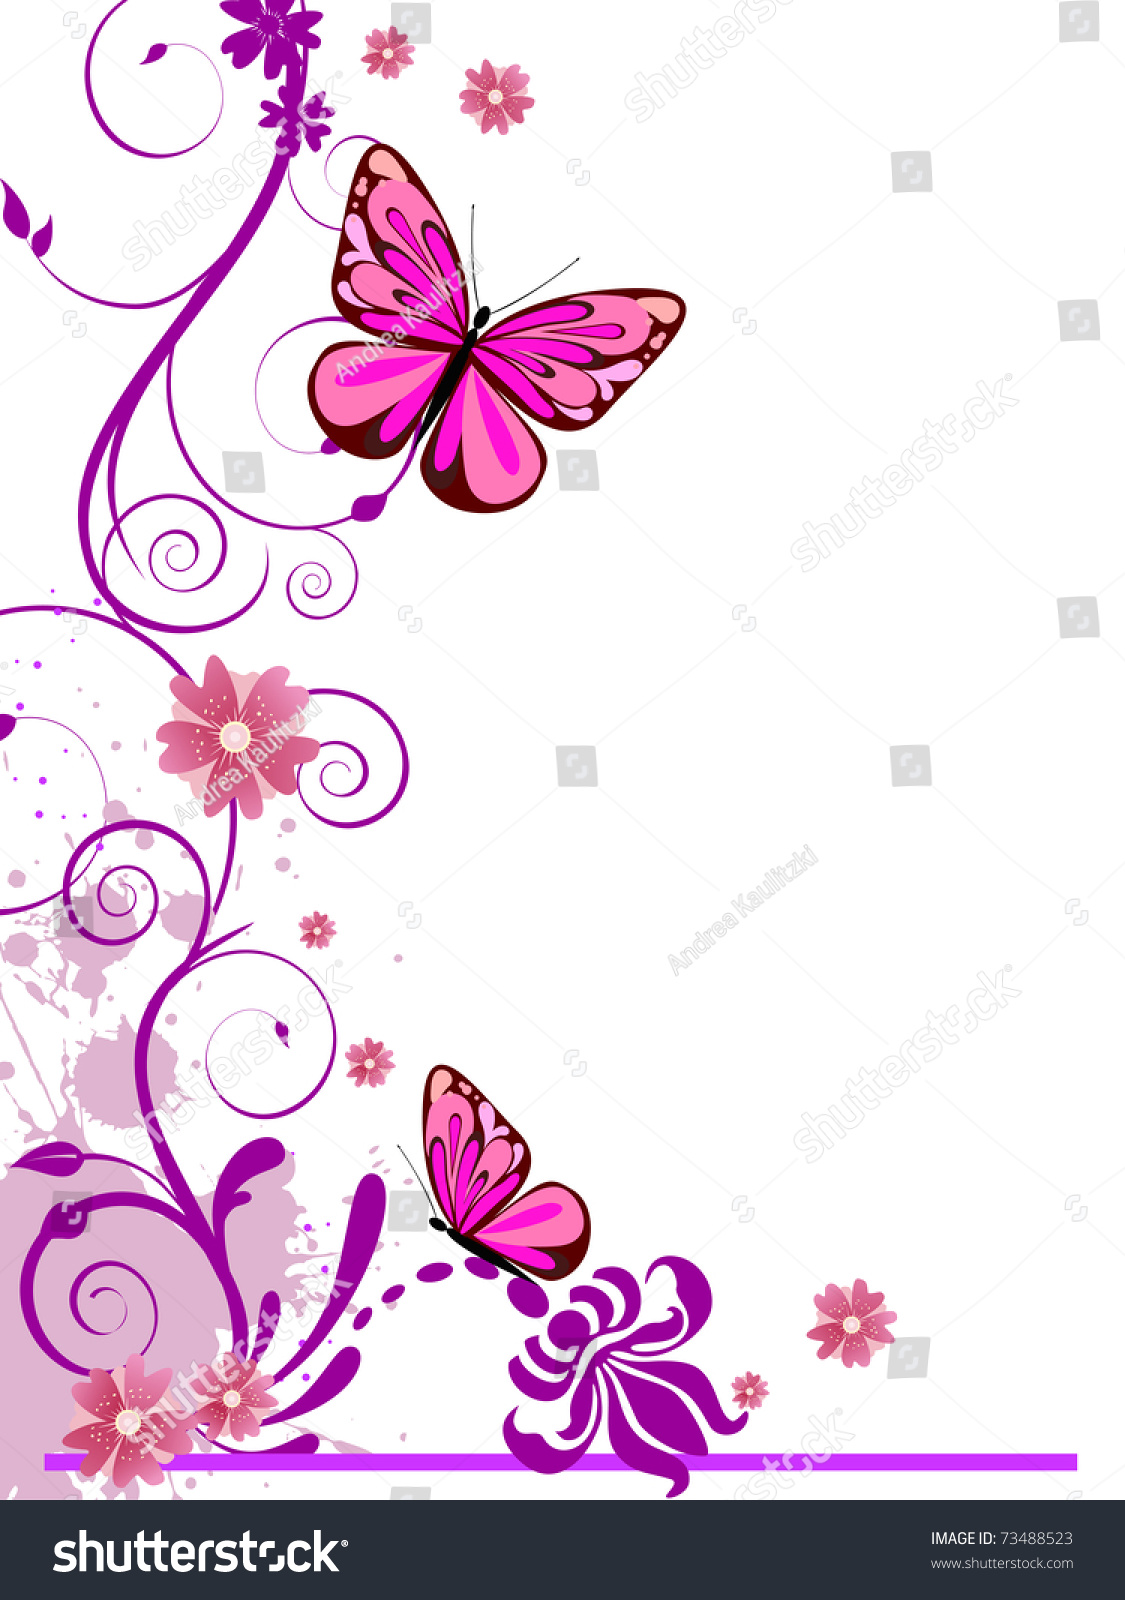 Floral Background With Butterflies - Vector - 73488523 : Shutterstock